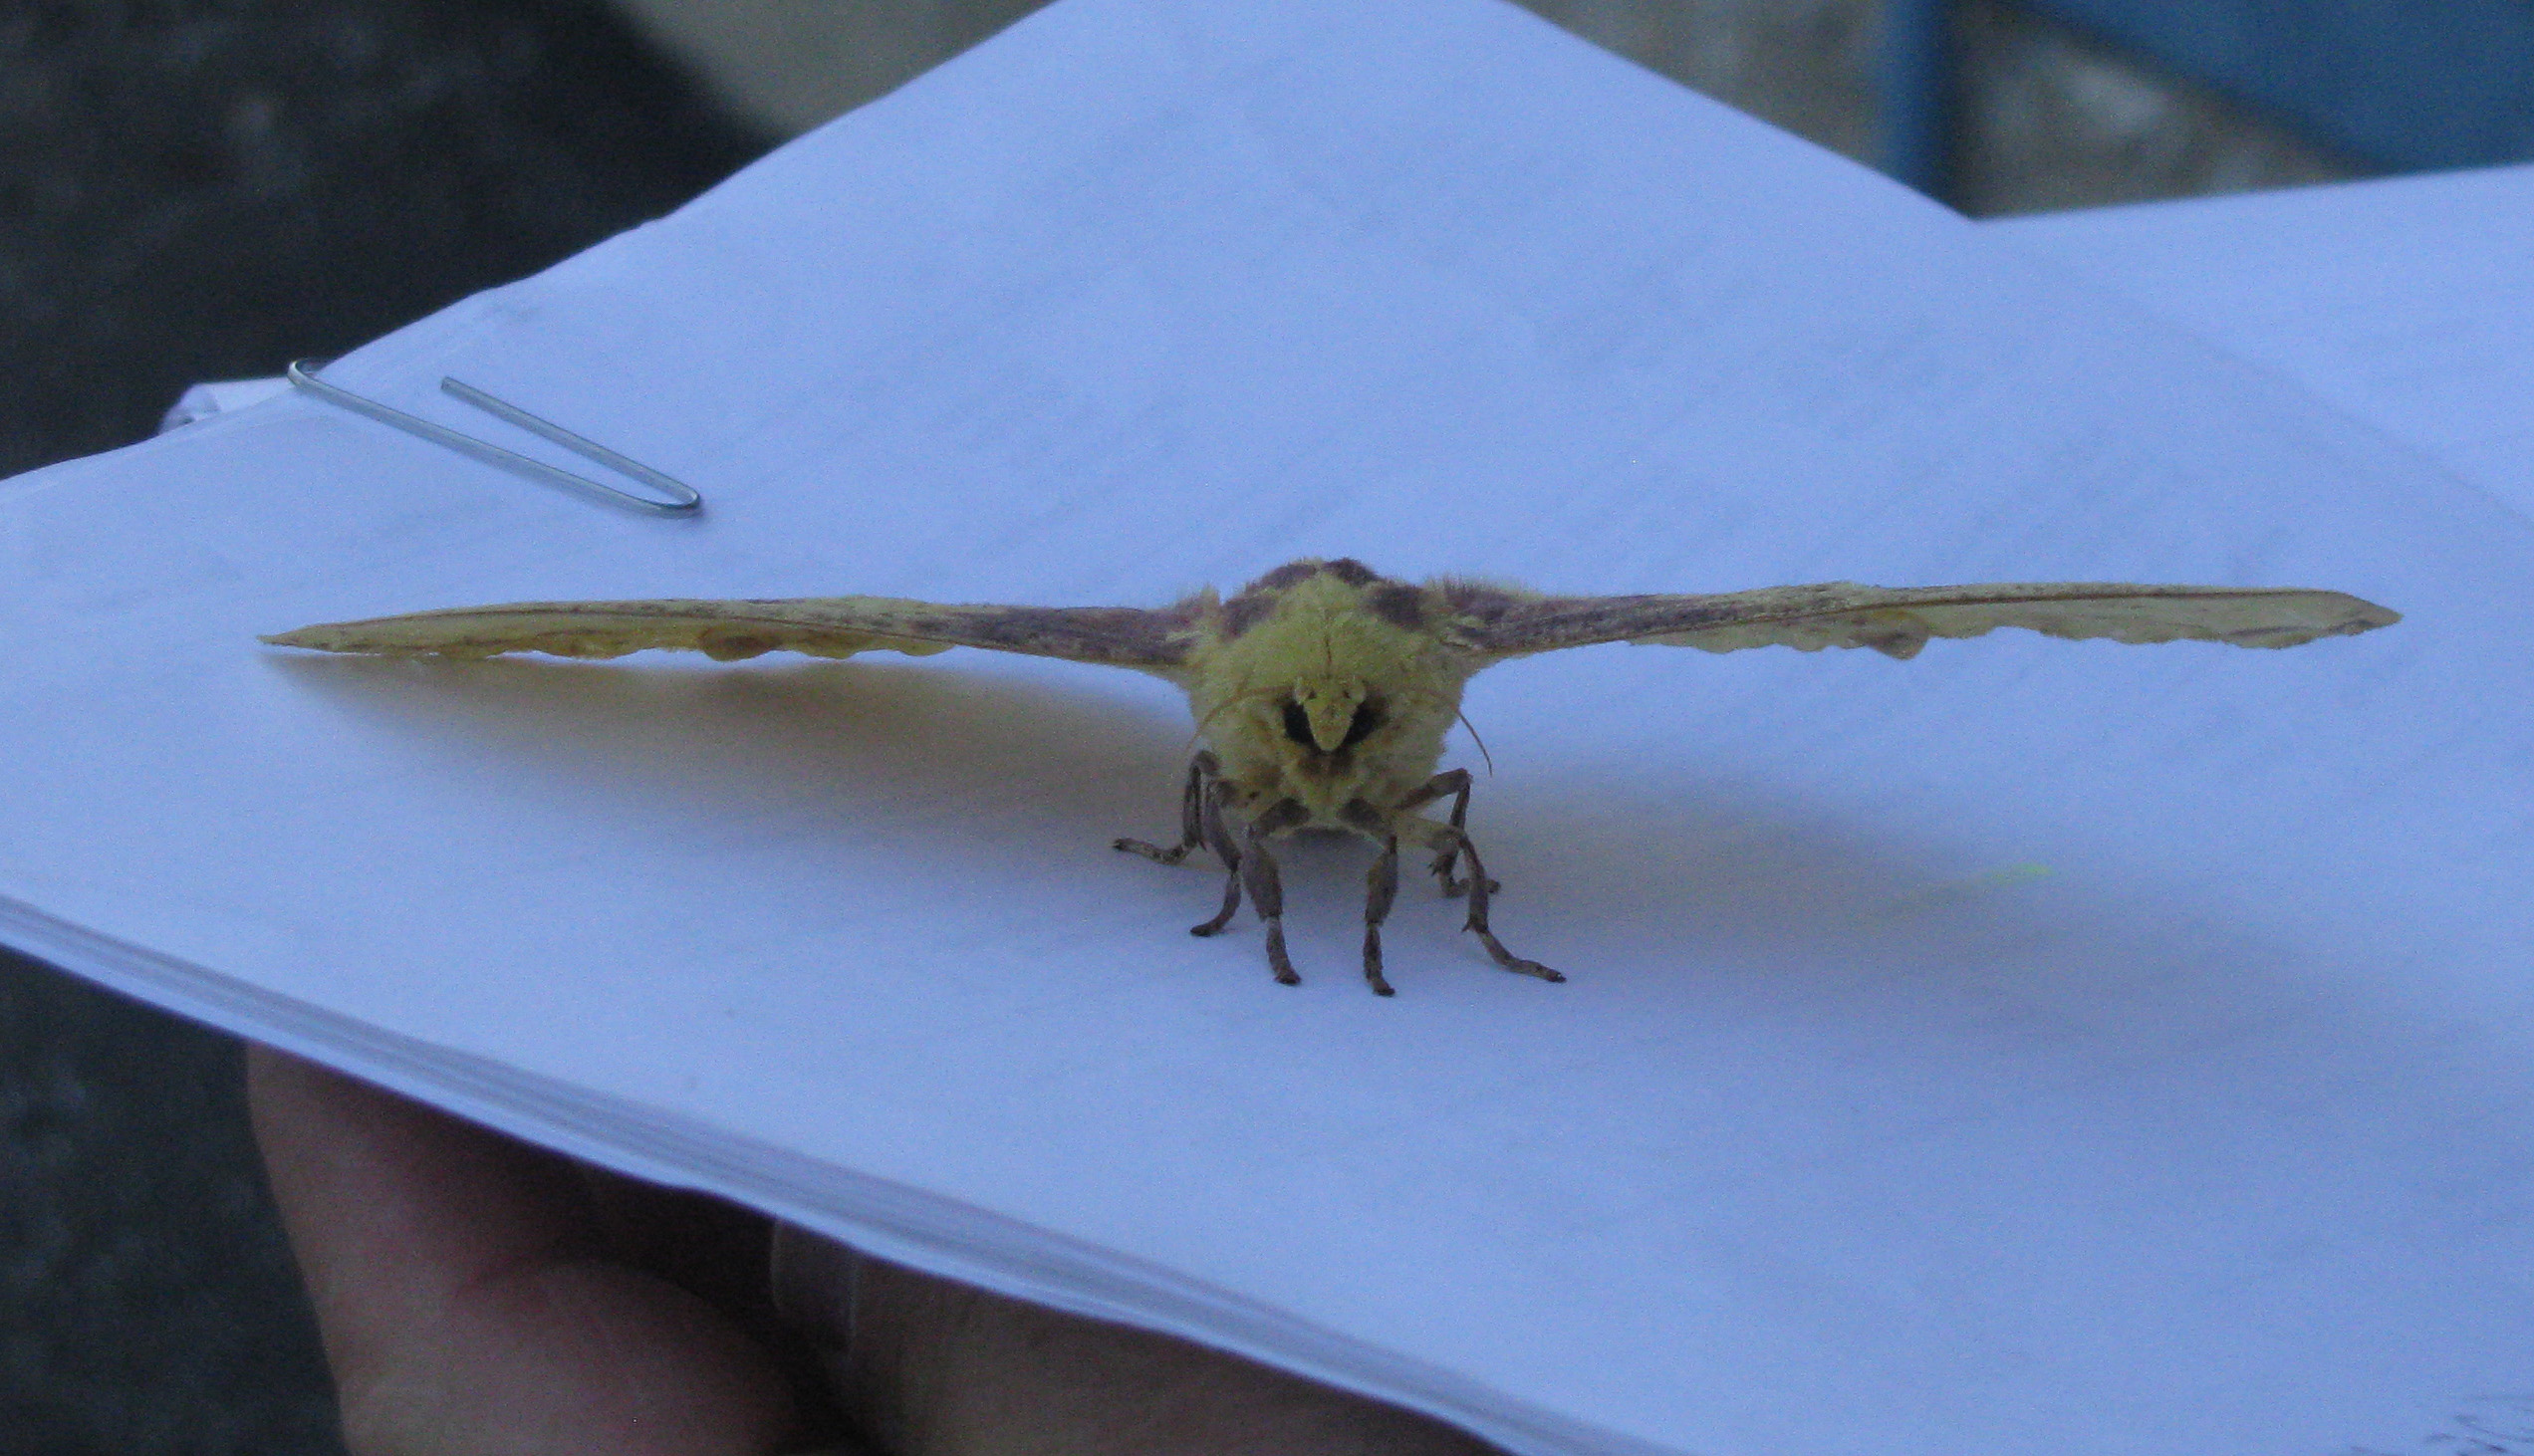 A kindly Fermilab staff member moves the moth out of harm's way. Photo: Sue Quarto, FESS